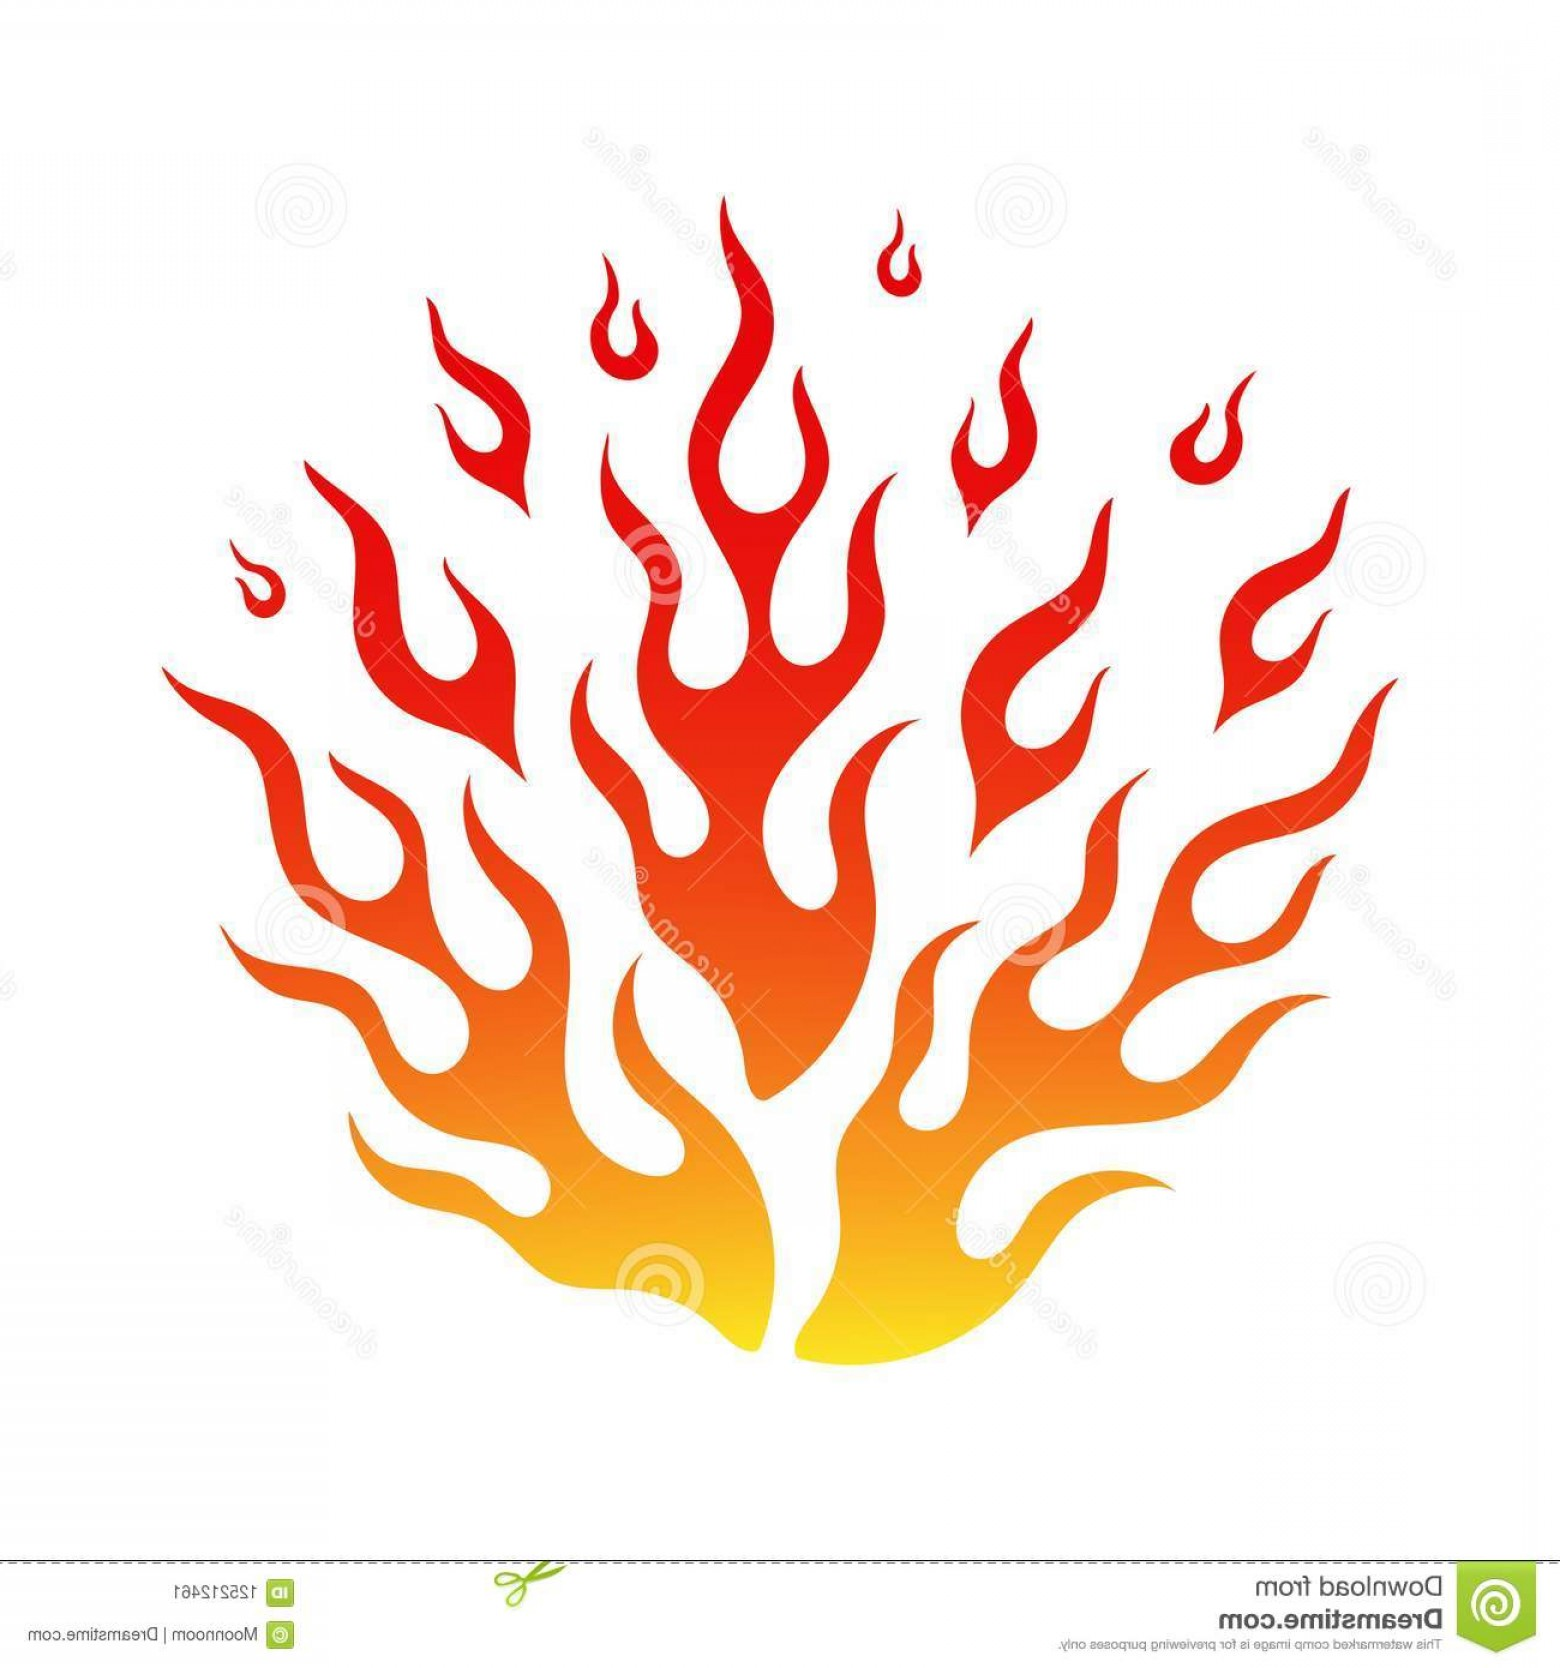 Cartoon Fire Flames Vector: Bright Fire Flame Cartoon Bonfire Hot Tattoo Flammable Emblem Flames Blaze Yellow Orange Red Colors Isolated White Image